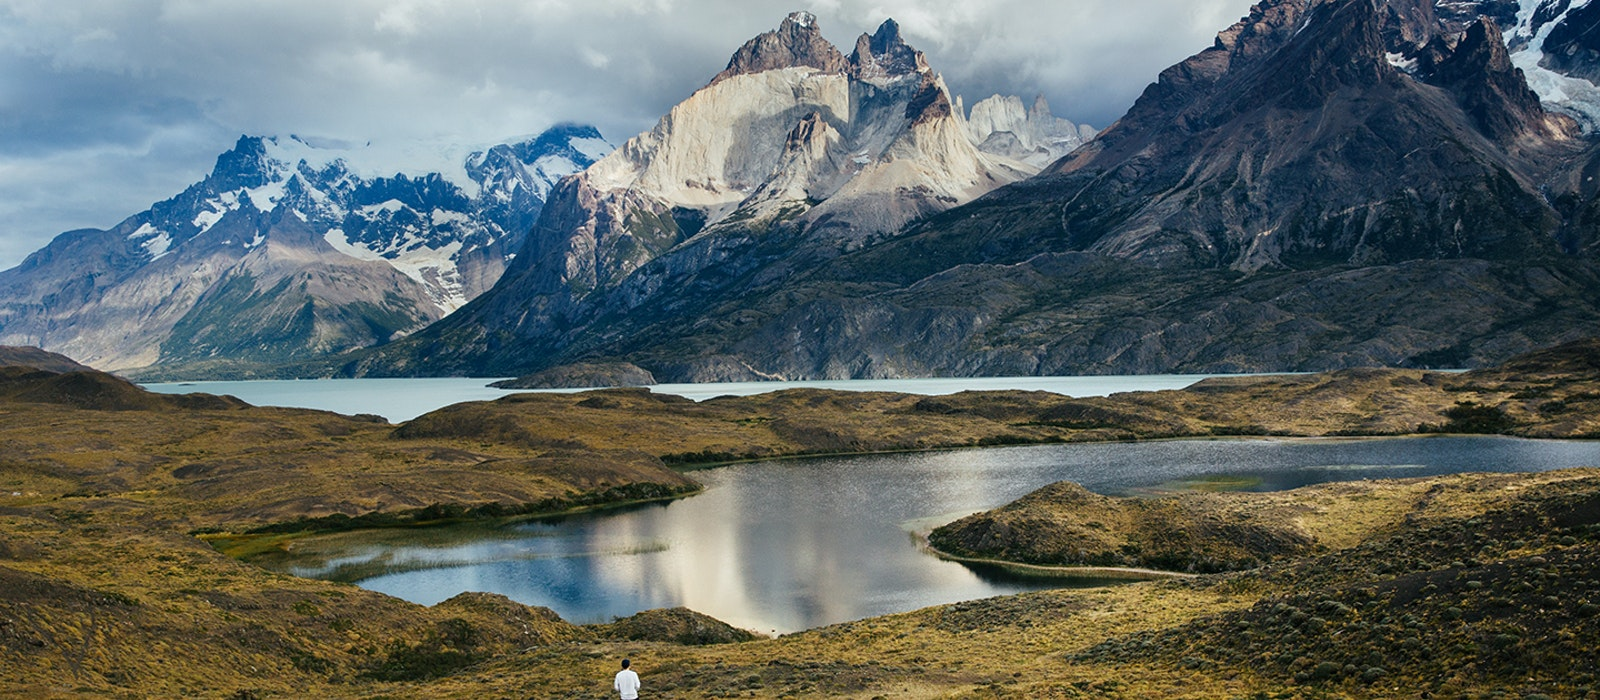 A view like this is in store for adventurers willing to make the trek to Torres del Paine National Park in Chile.